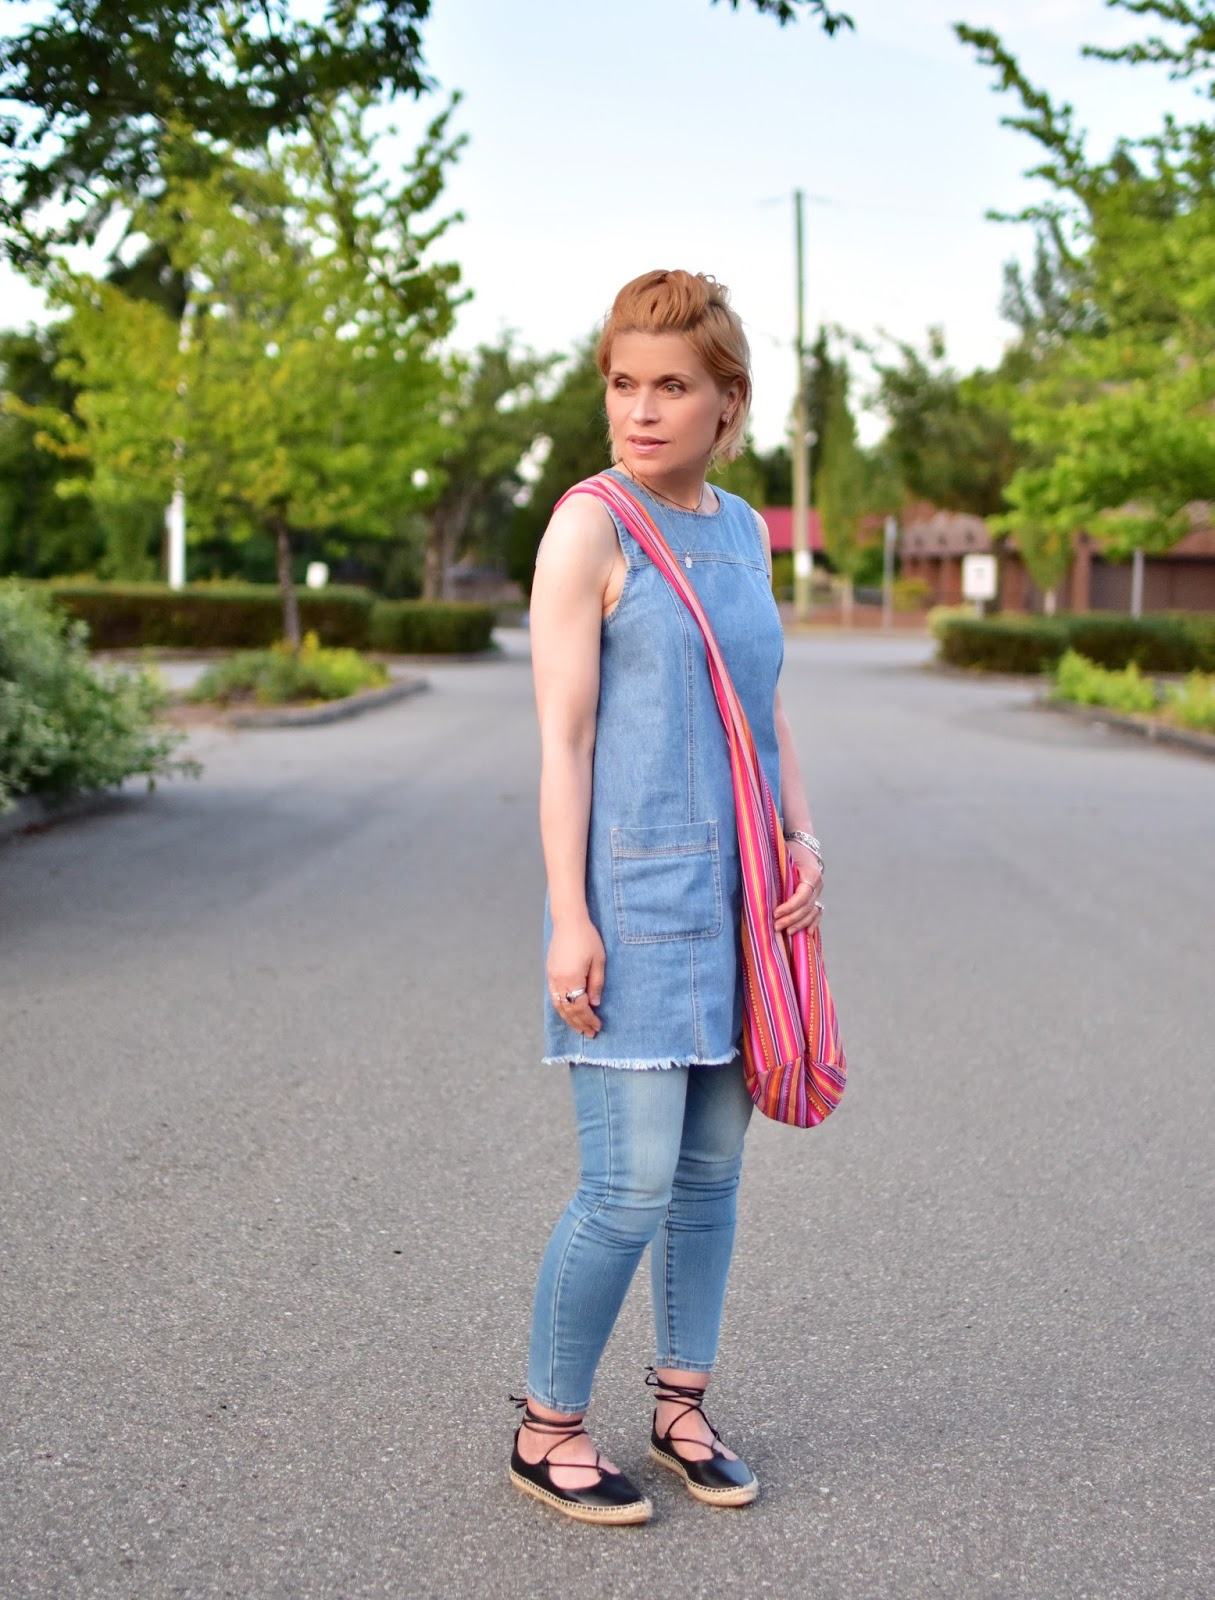 styling a denim tunic with skinny jeans, Zara espadrilles, and a striped hobo bag